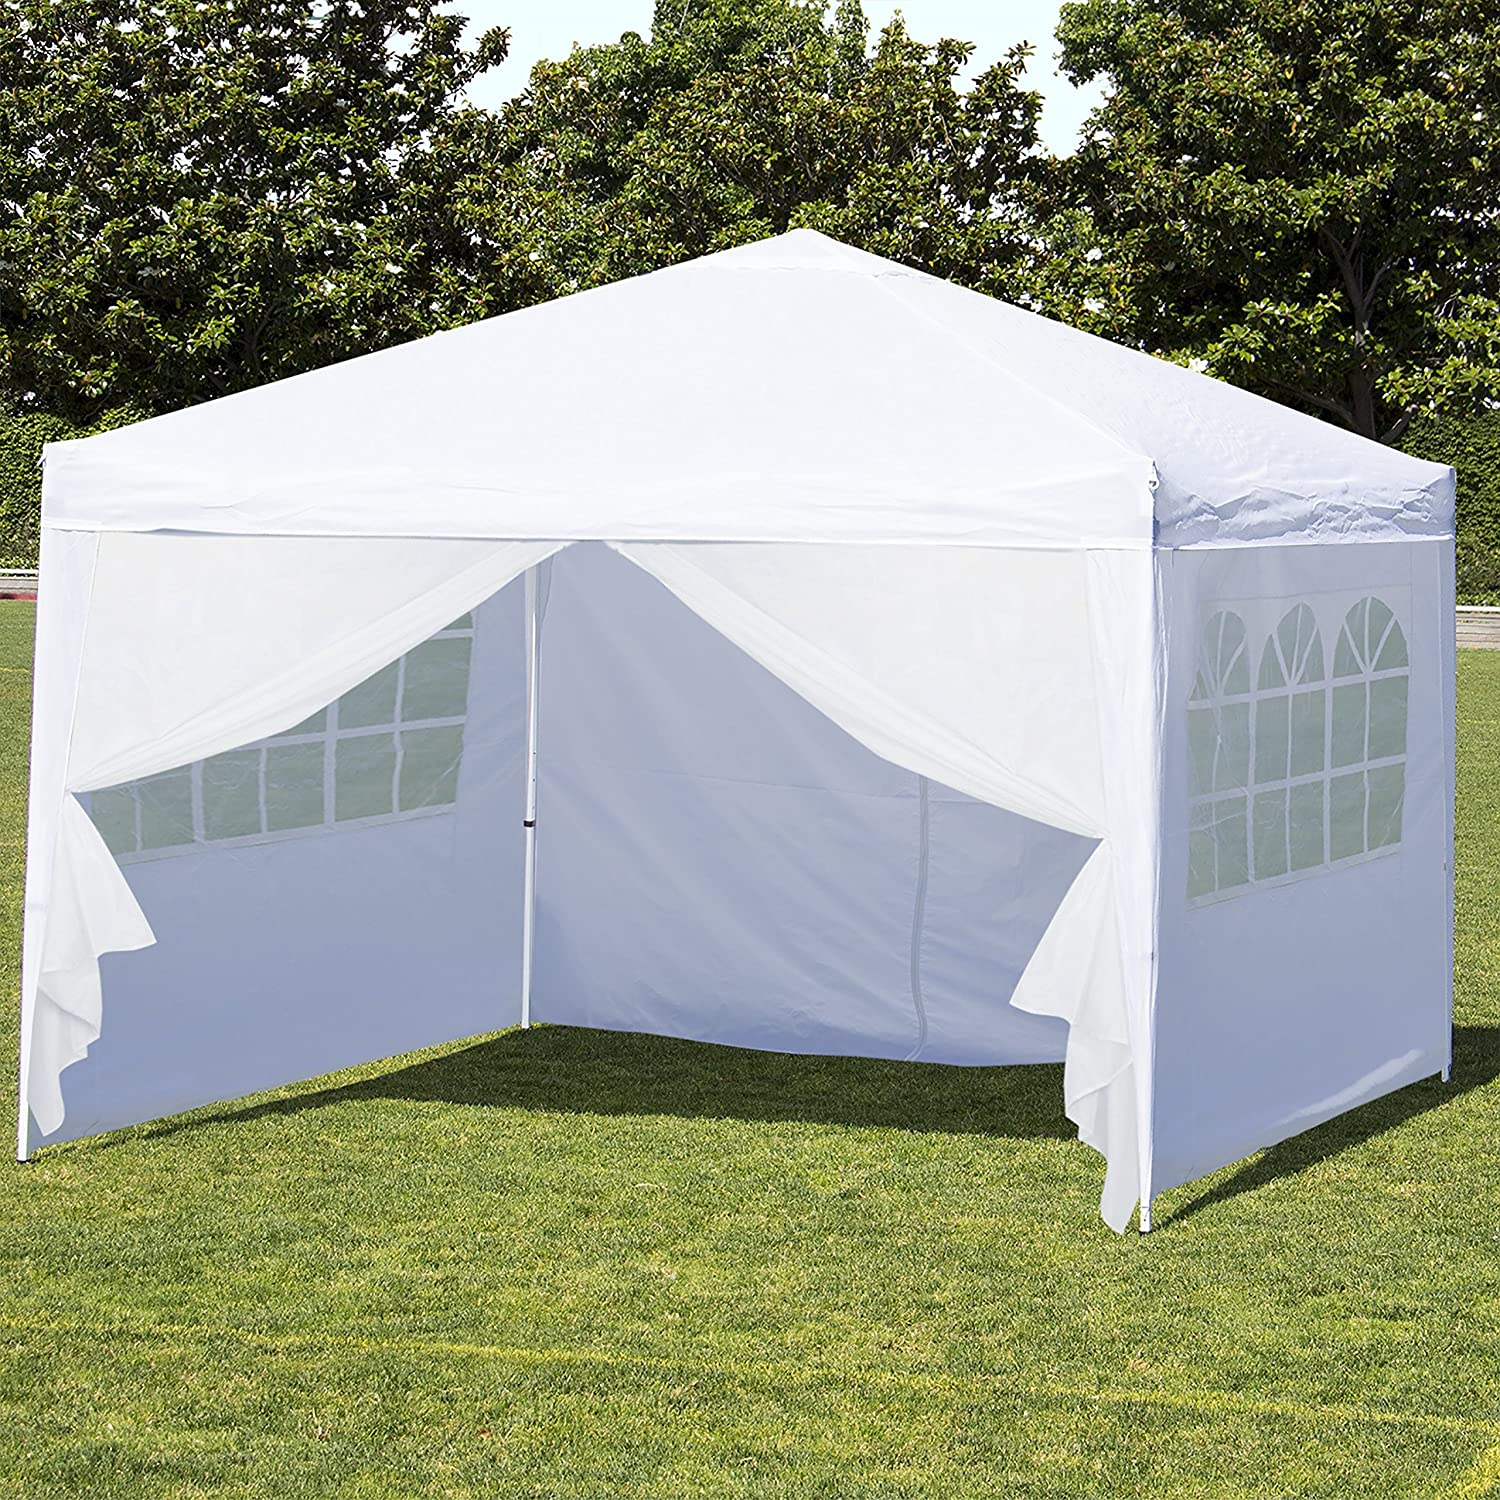 Best Choice Products 10u0027 x 10u0027 EZ Pop Up Canopy Tent Side Walls u0026 & Amazon.com: Quik Shade 10u0027x10u0027 Instant Canopy Wall Panel Set with ...